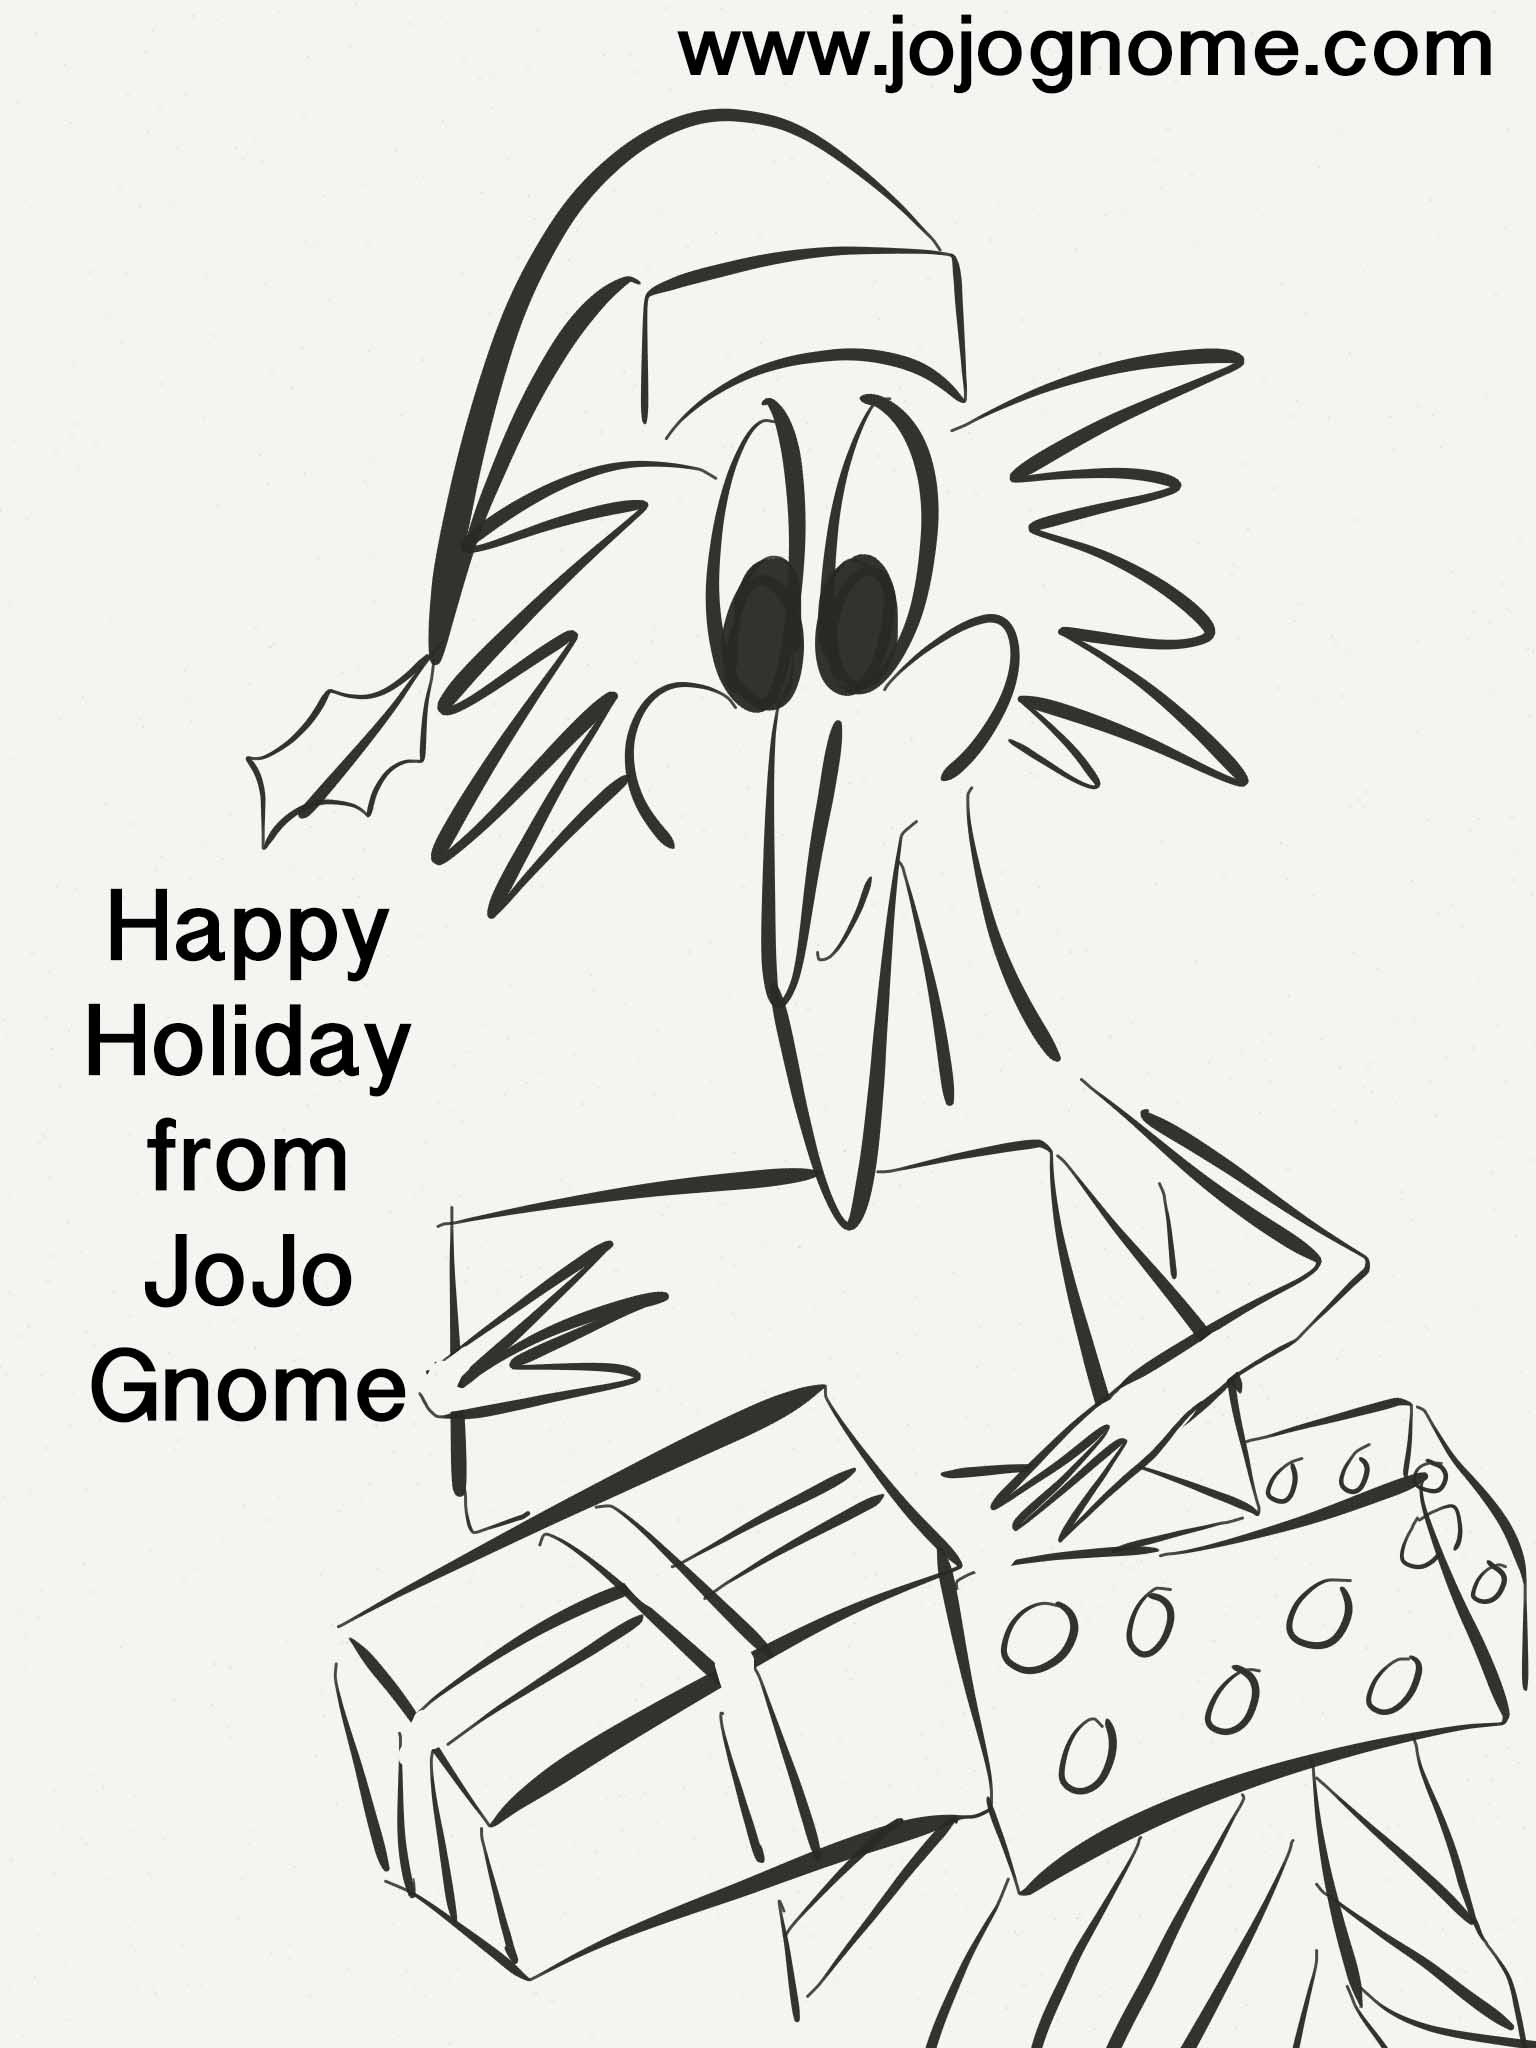 jojo gnome u0027s christmas colouring pages jojognome